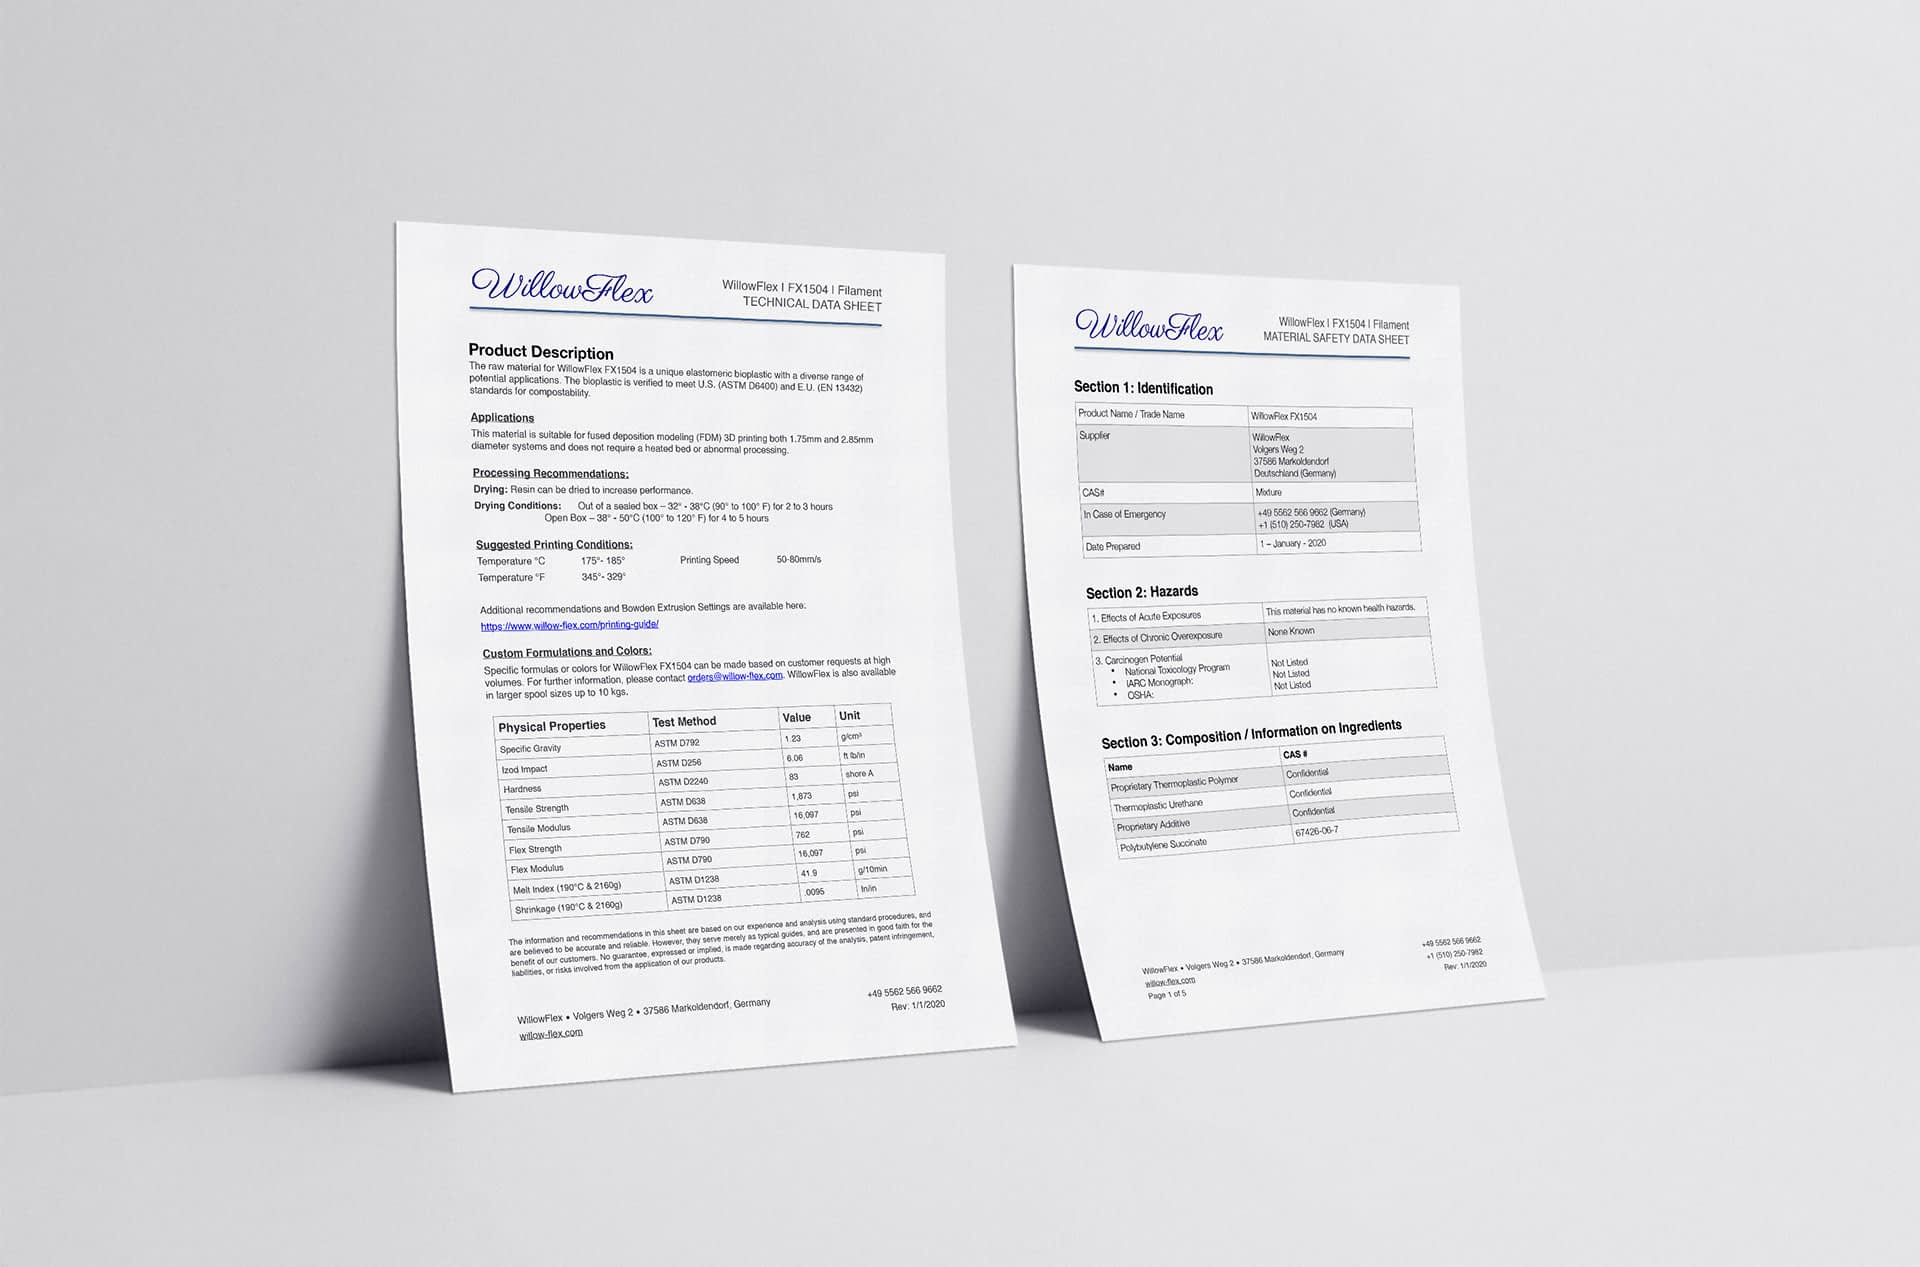 Technical Specifications Sheets for WillowFlex